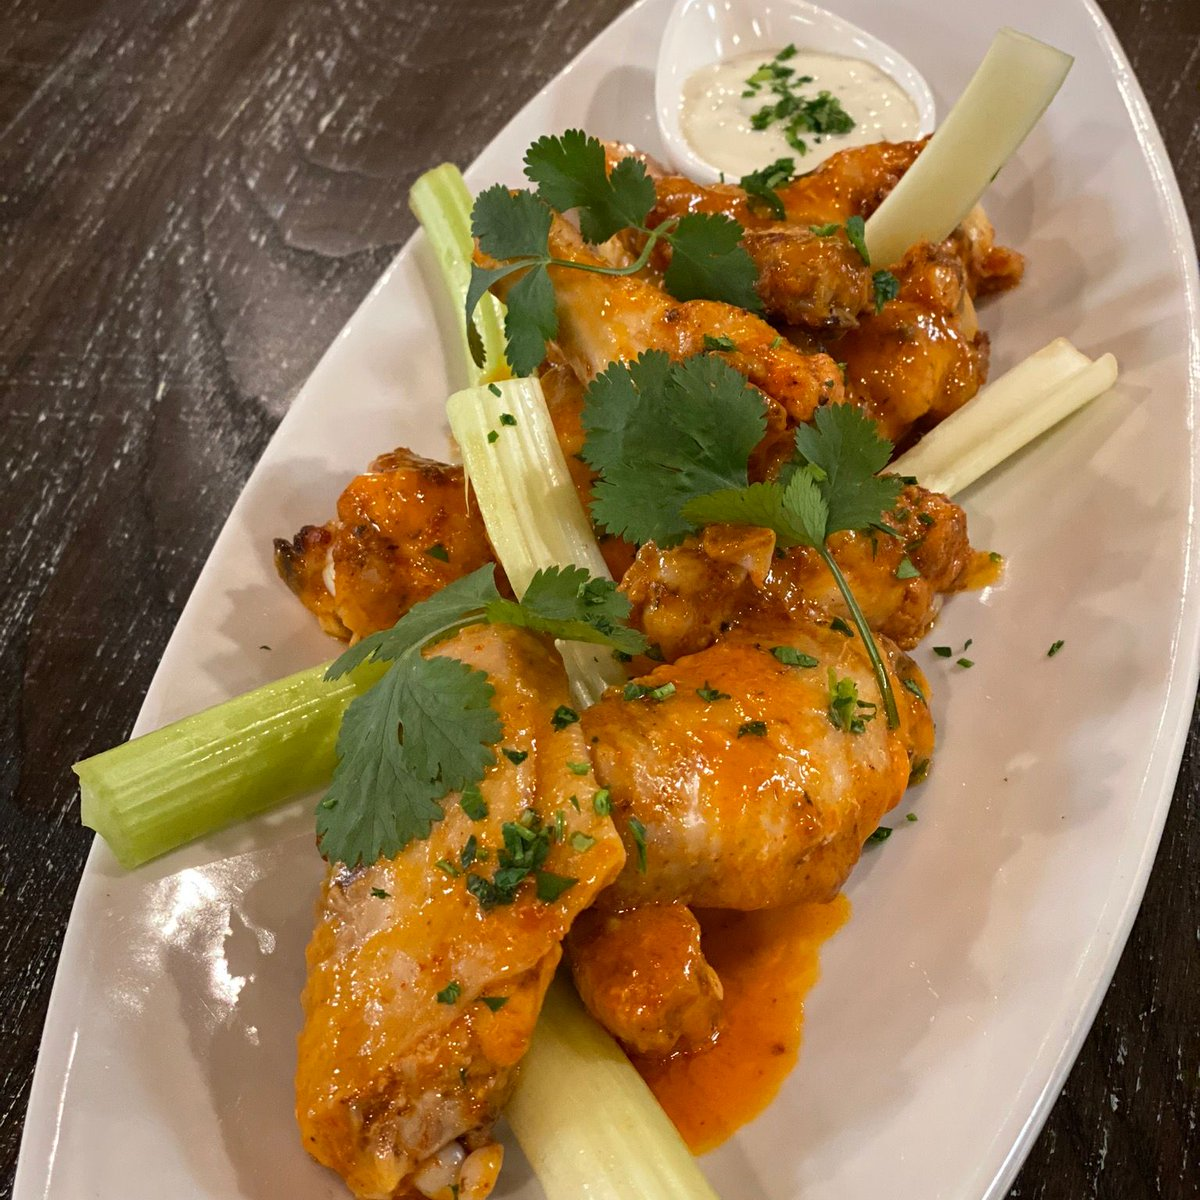 Make it a #WingitWednesday at MIX Lounge with $3 off bar bites, including these wings at #HappyHour from 3 - 5 PM! 🍗We've also got specials on wine, beer, and select mixed drinks. 🍸https://t.co/rG0XentxgP https://t.co/FCxd94Lbcw